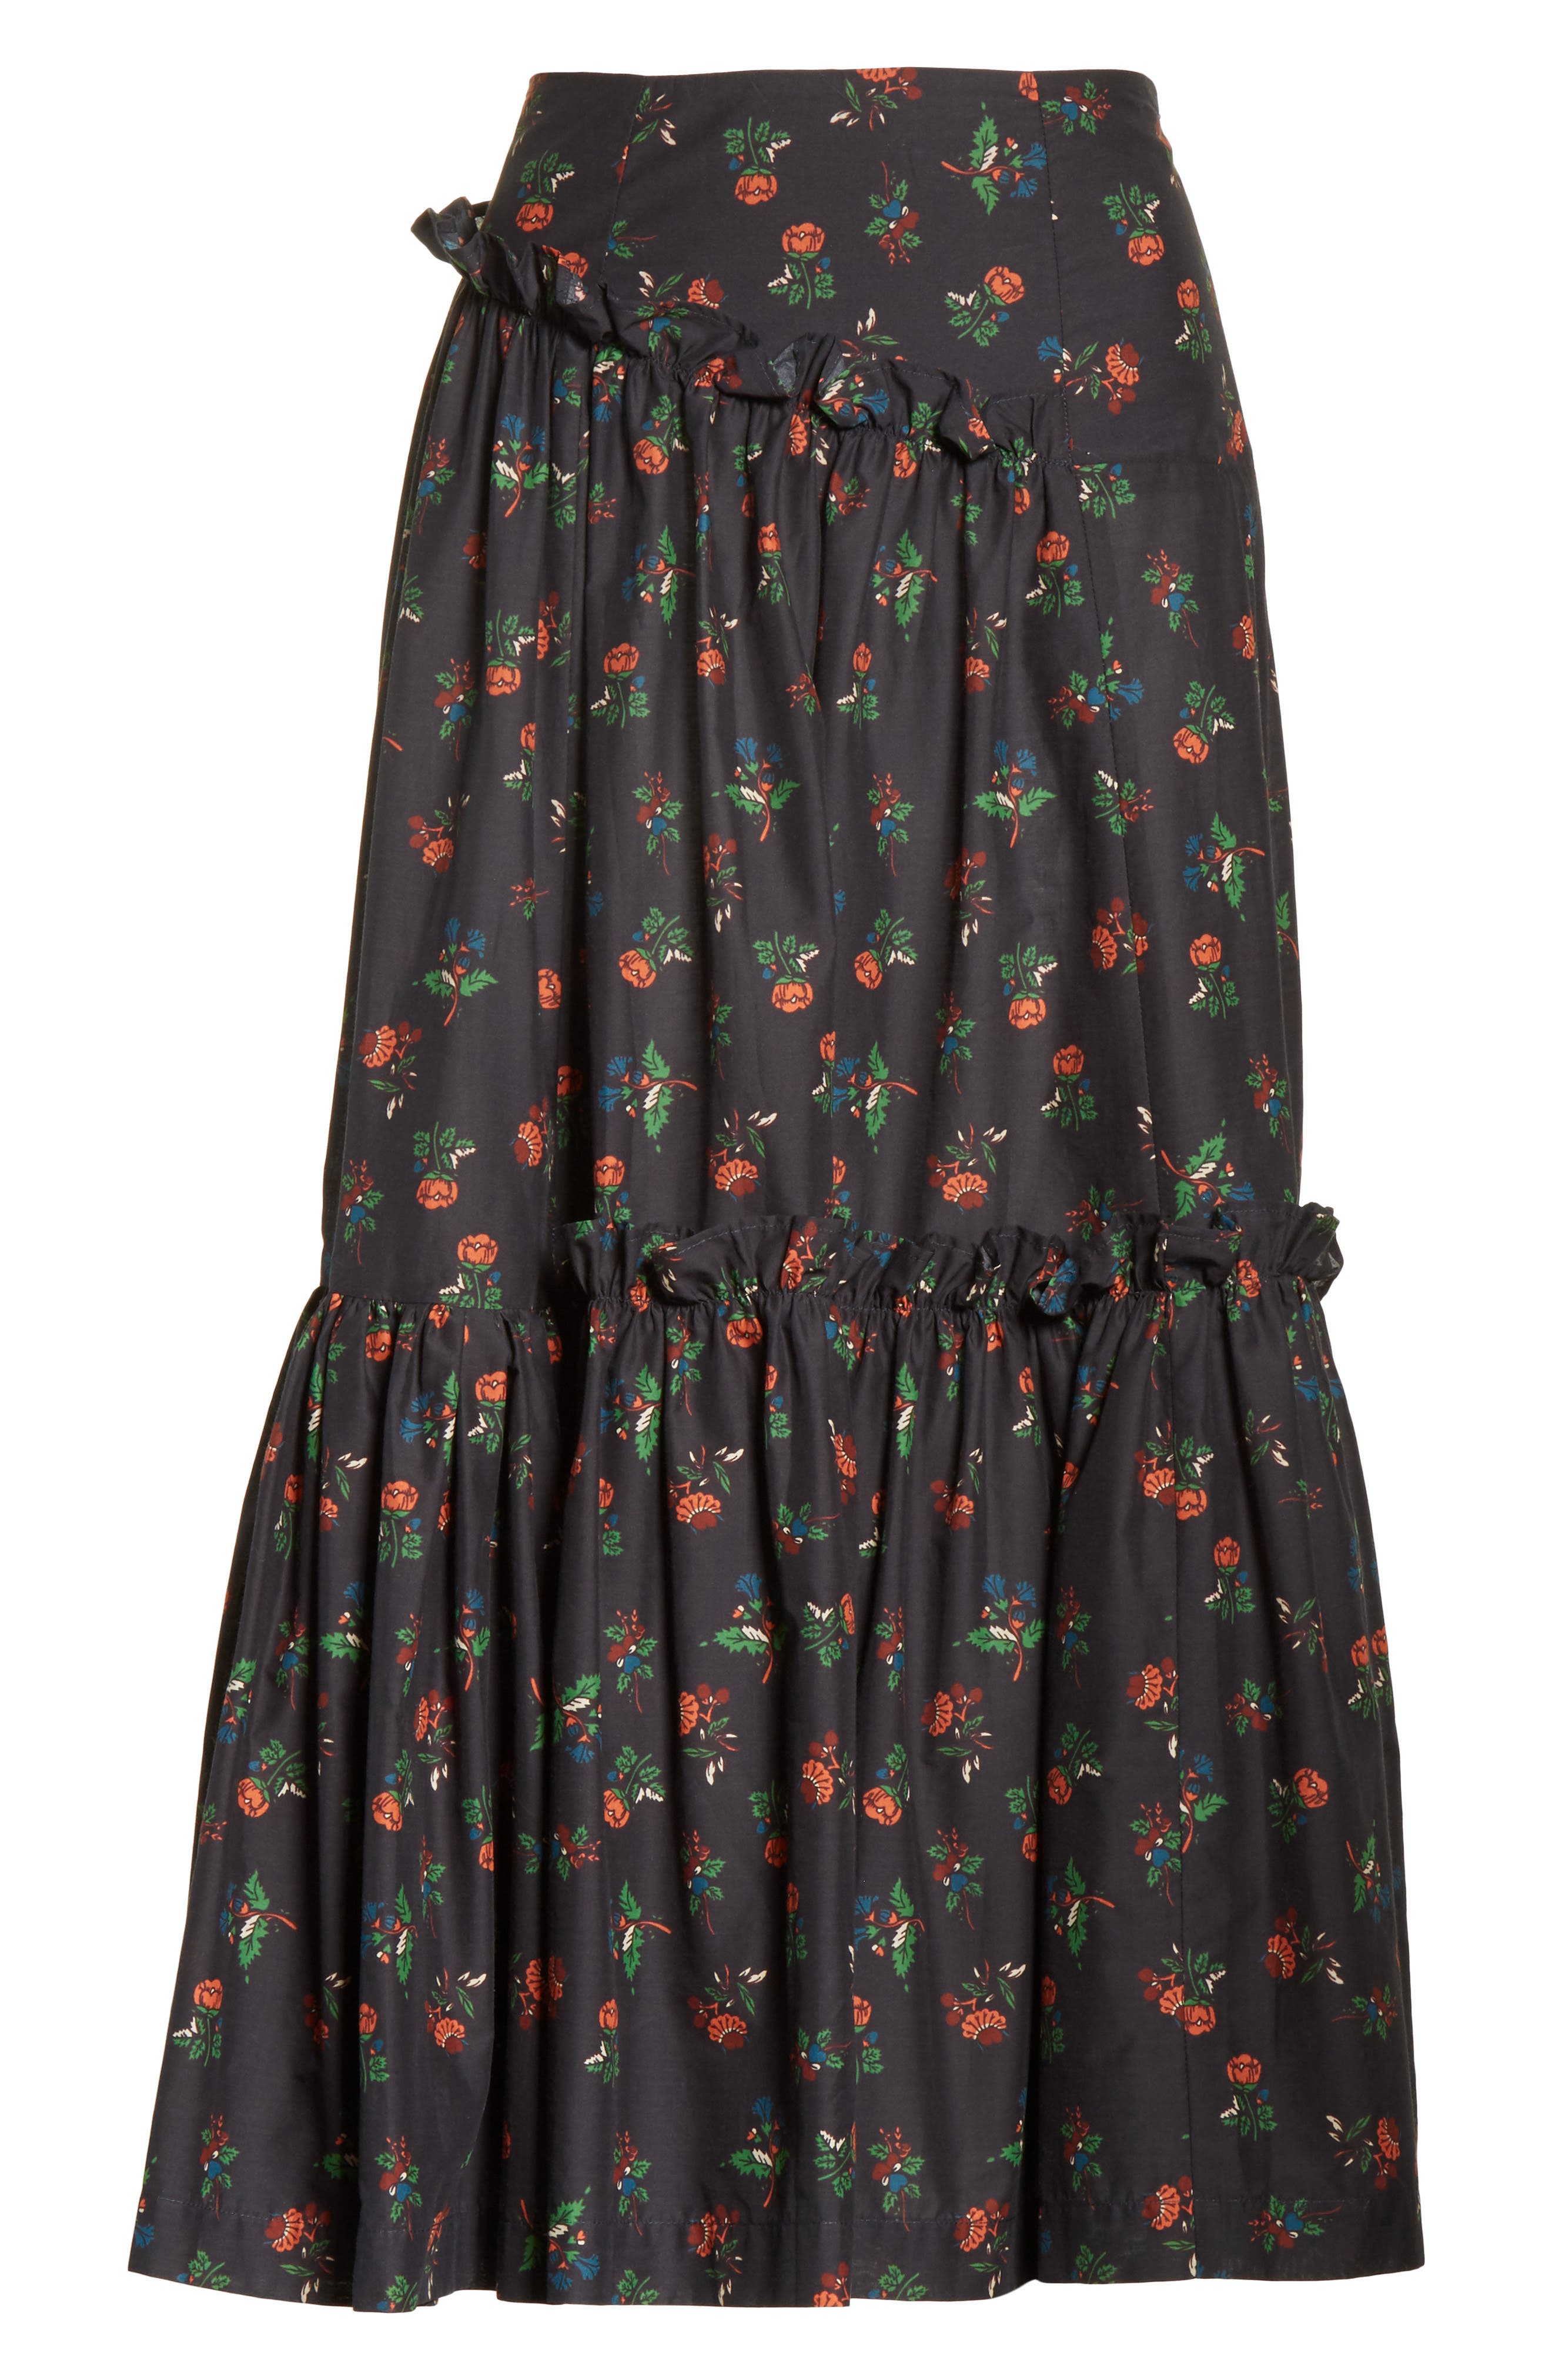 Tracey Floral Skirt,                             Alternate thumbnail 6, color,                             001